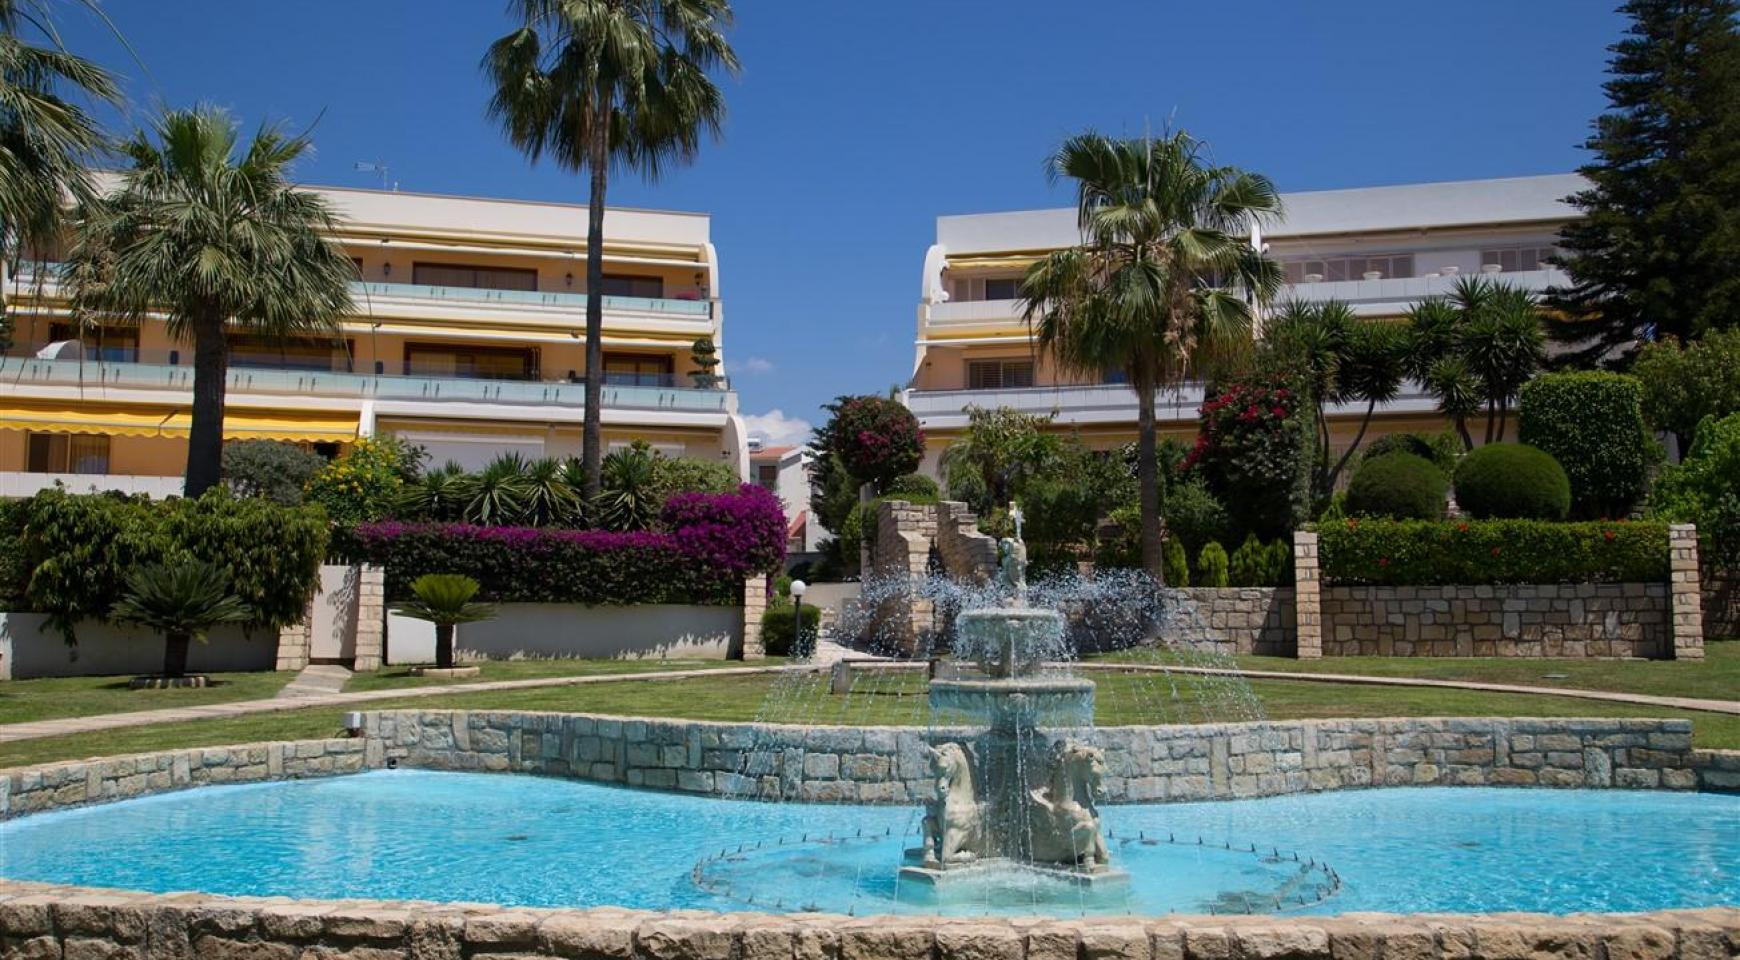 Luxury 3 Bedroom Apartment Thera 102 by the Sea - 6